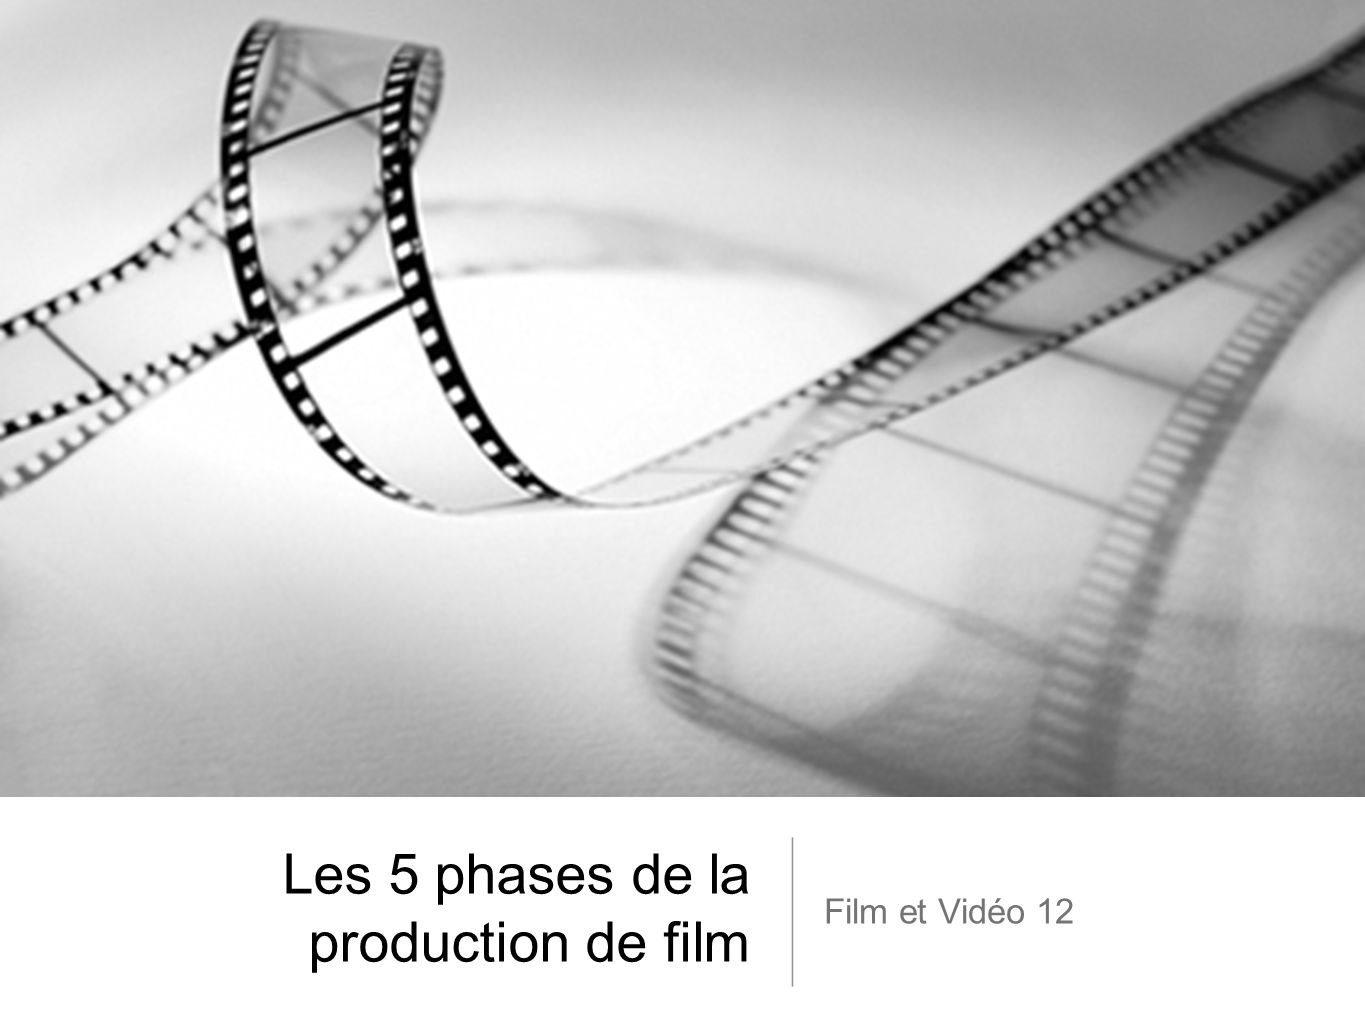 Les 5 phases de la production de film